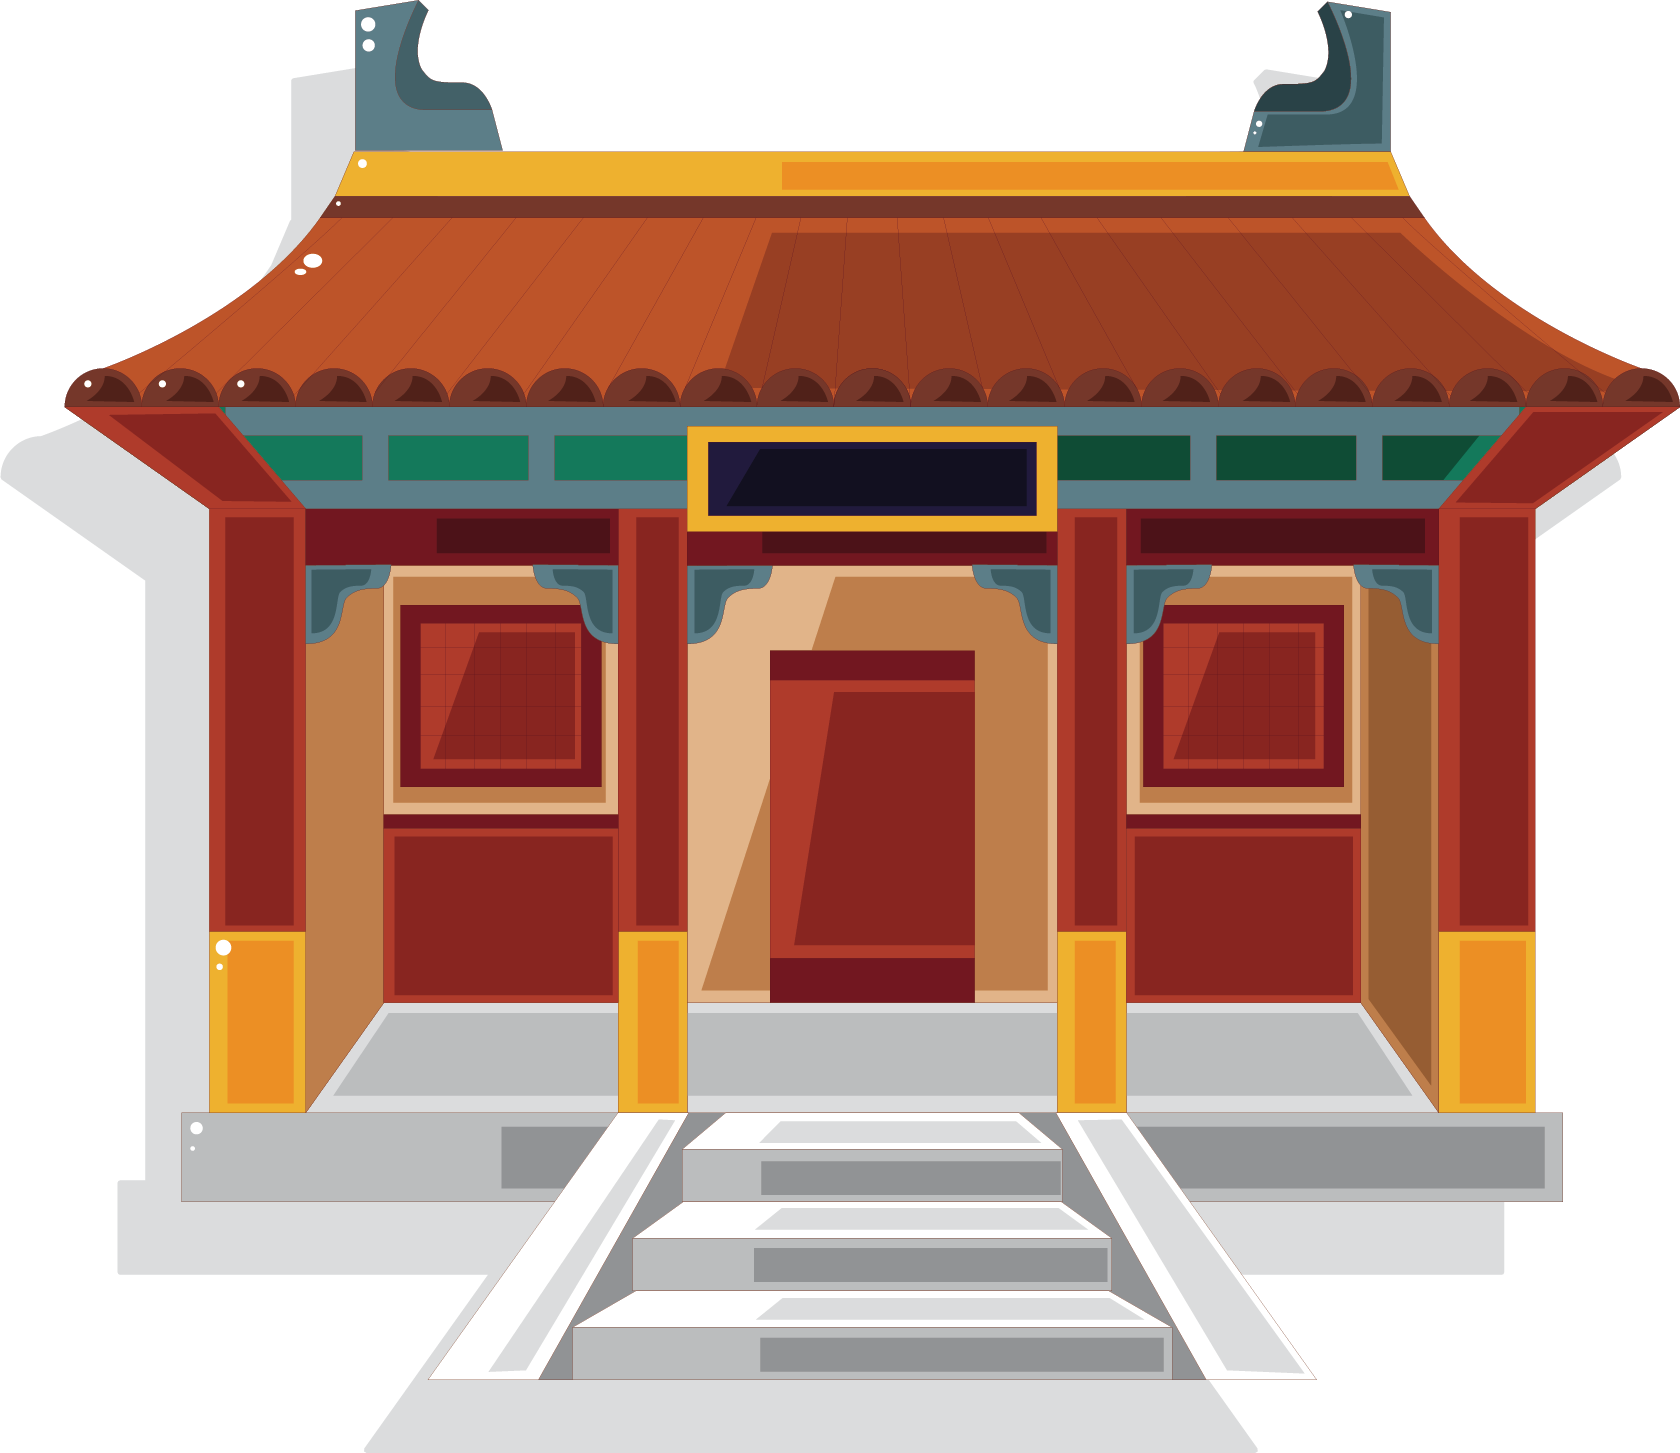 Ancient chinese temple clipart graphic freeuse library Chinese temple clipart clipart images gallery for free download ... graphic freeuse library